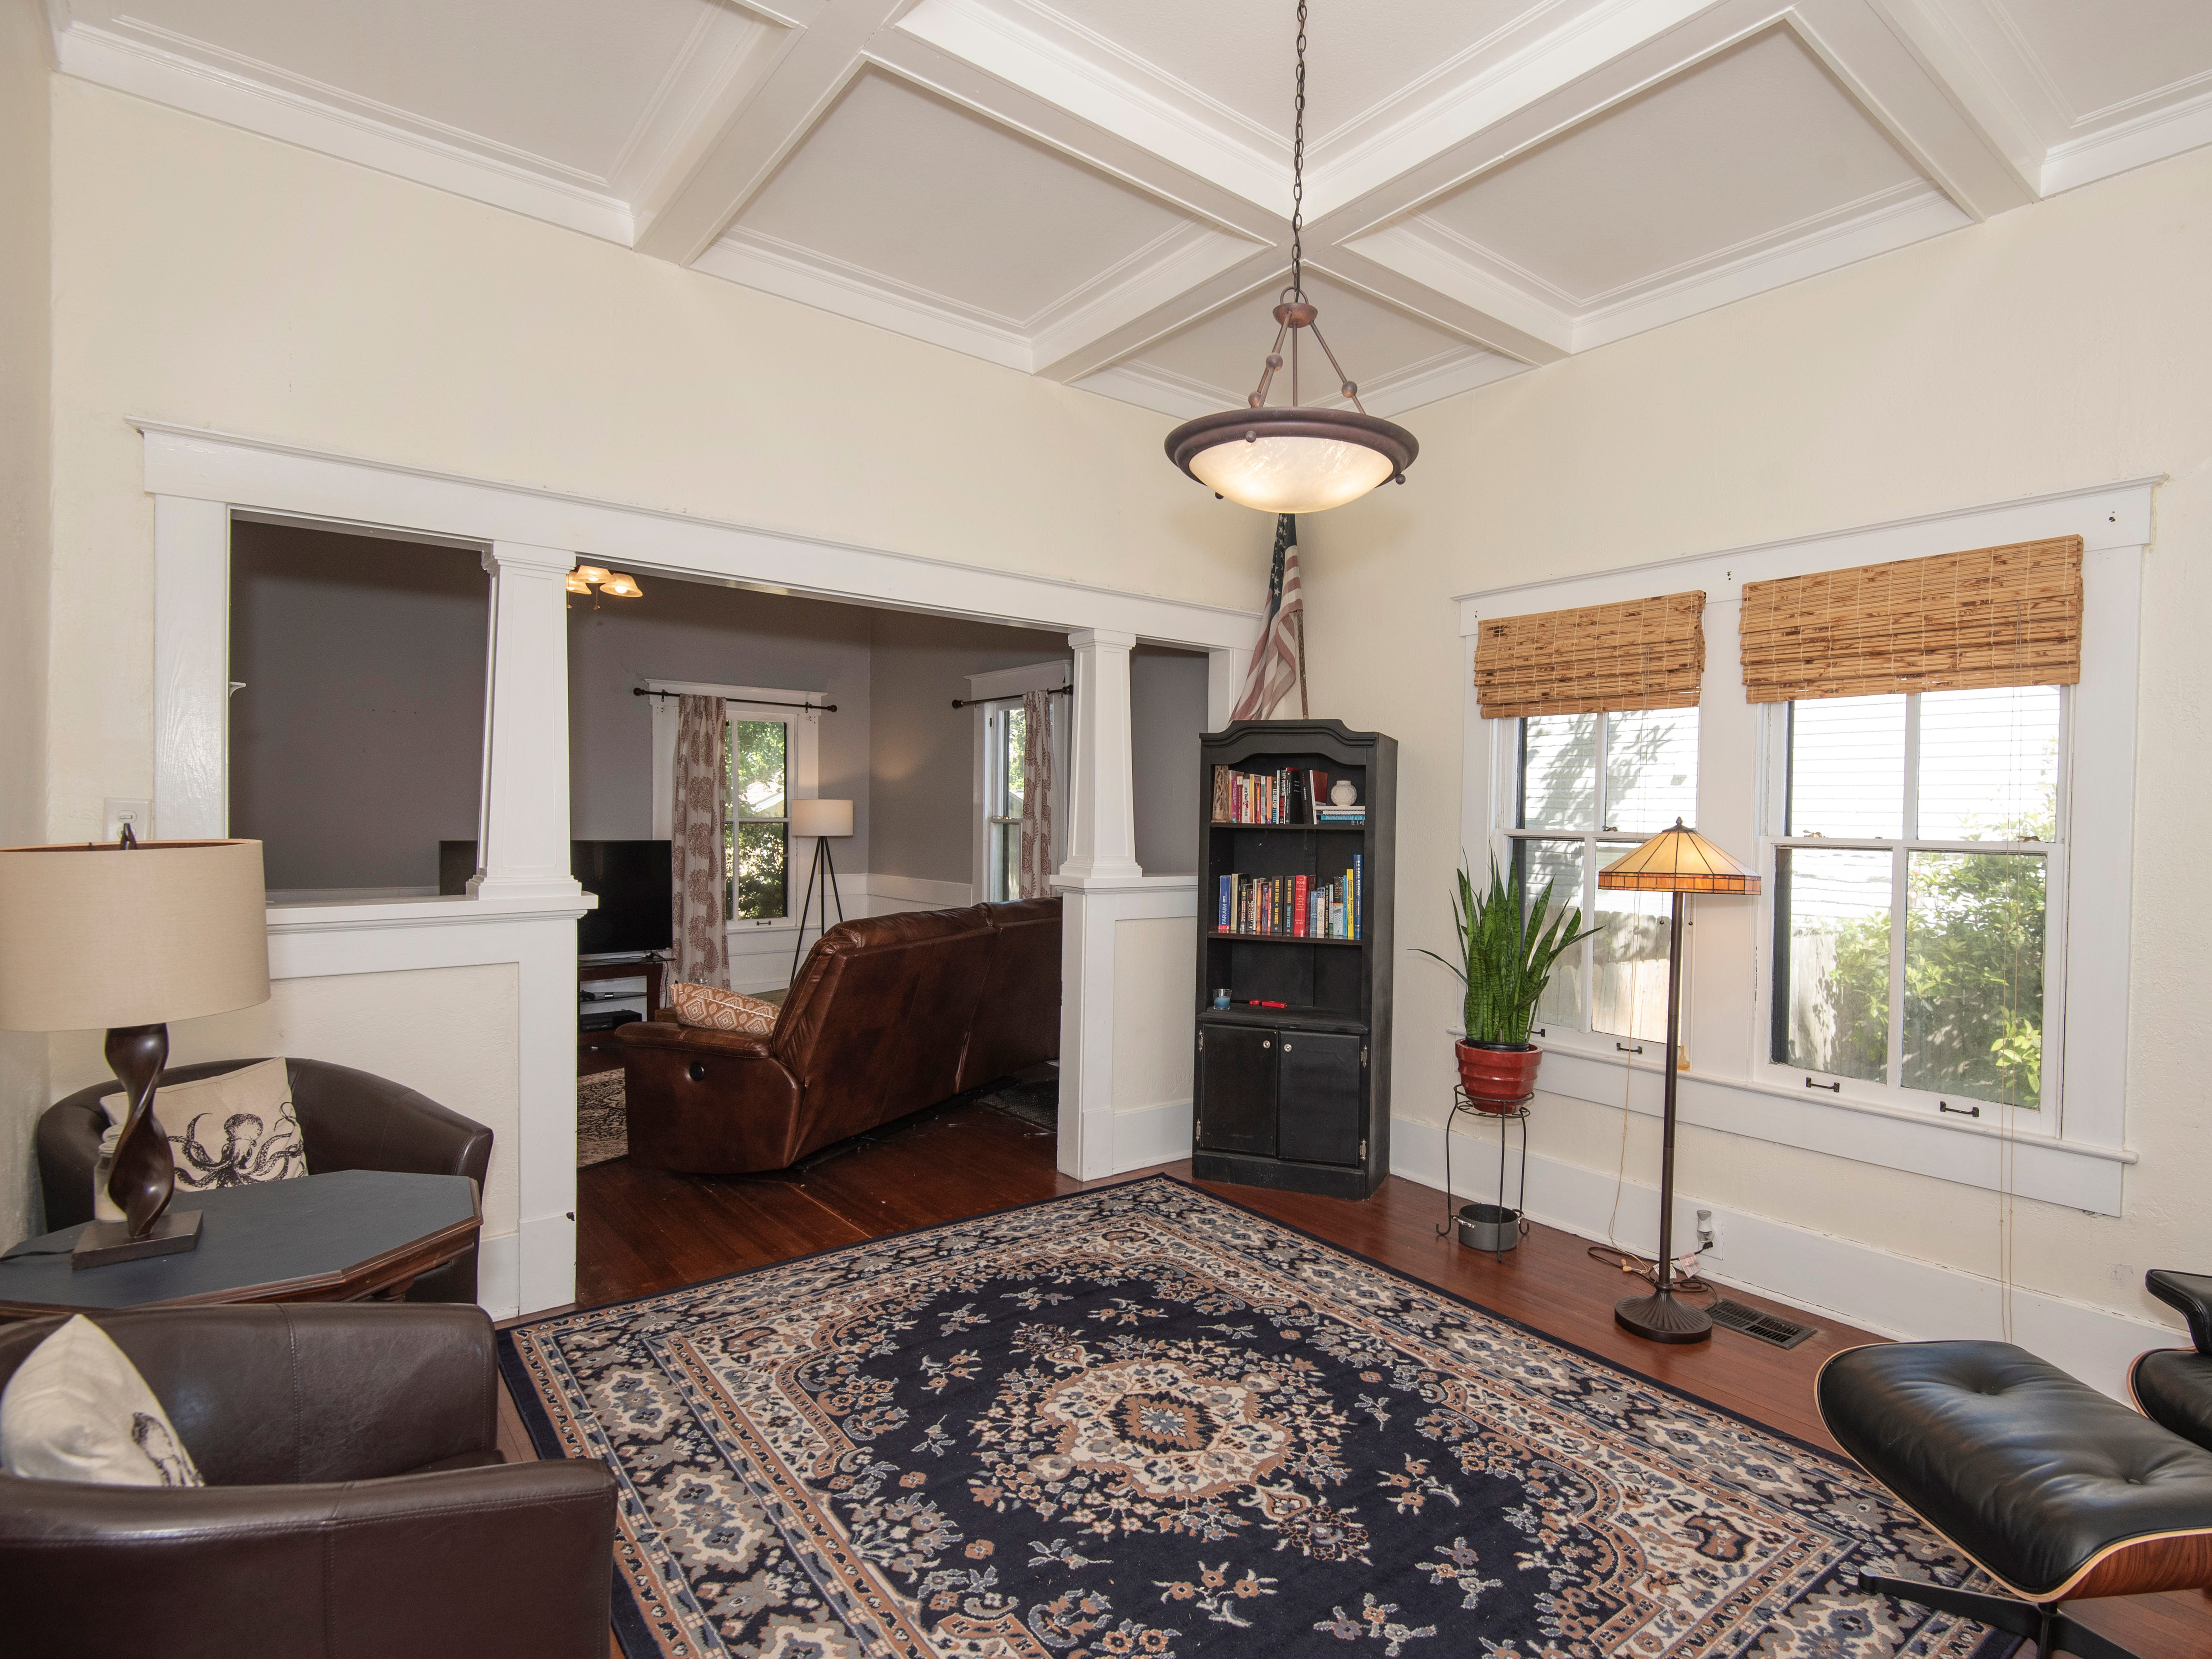 """A charming home at 713 N. 15th Ave. in East Hill has both character and history. Constructed in 1906, the house has recently had upgrades to the foundation, bringing it into the 21st century with a """"high-tech smart jack system"""" and a 25-year warranty."""